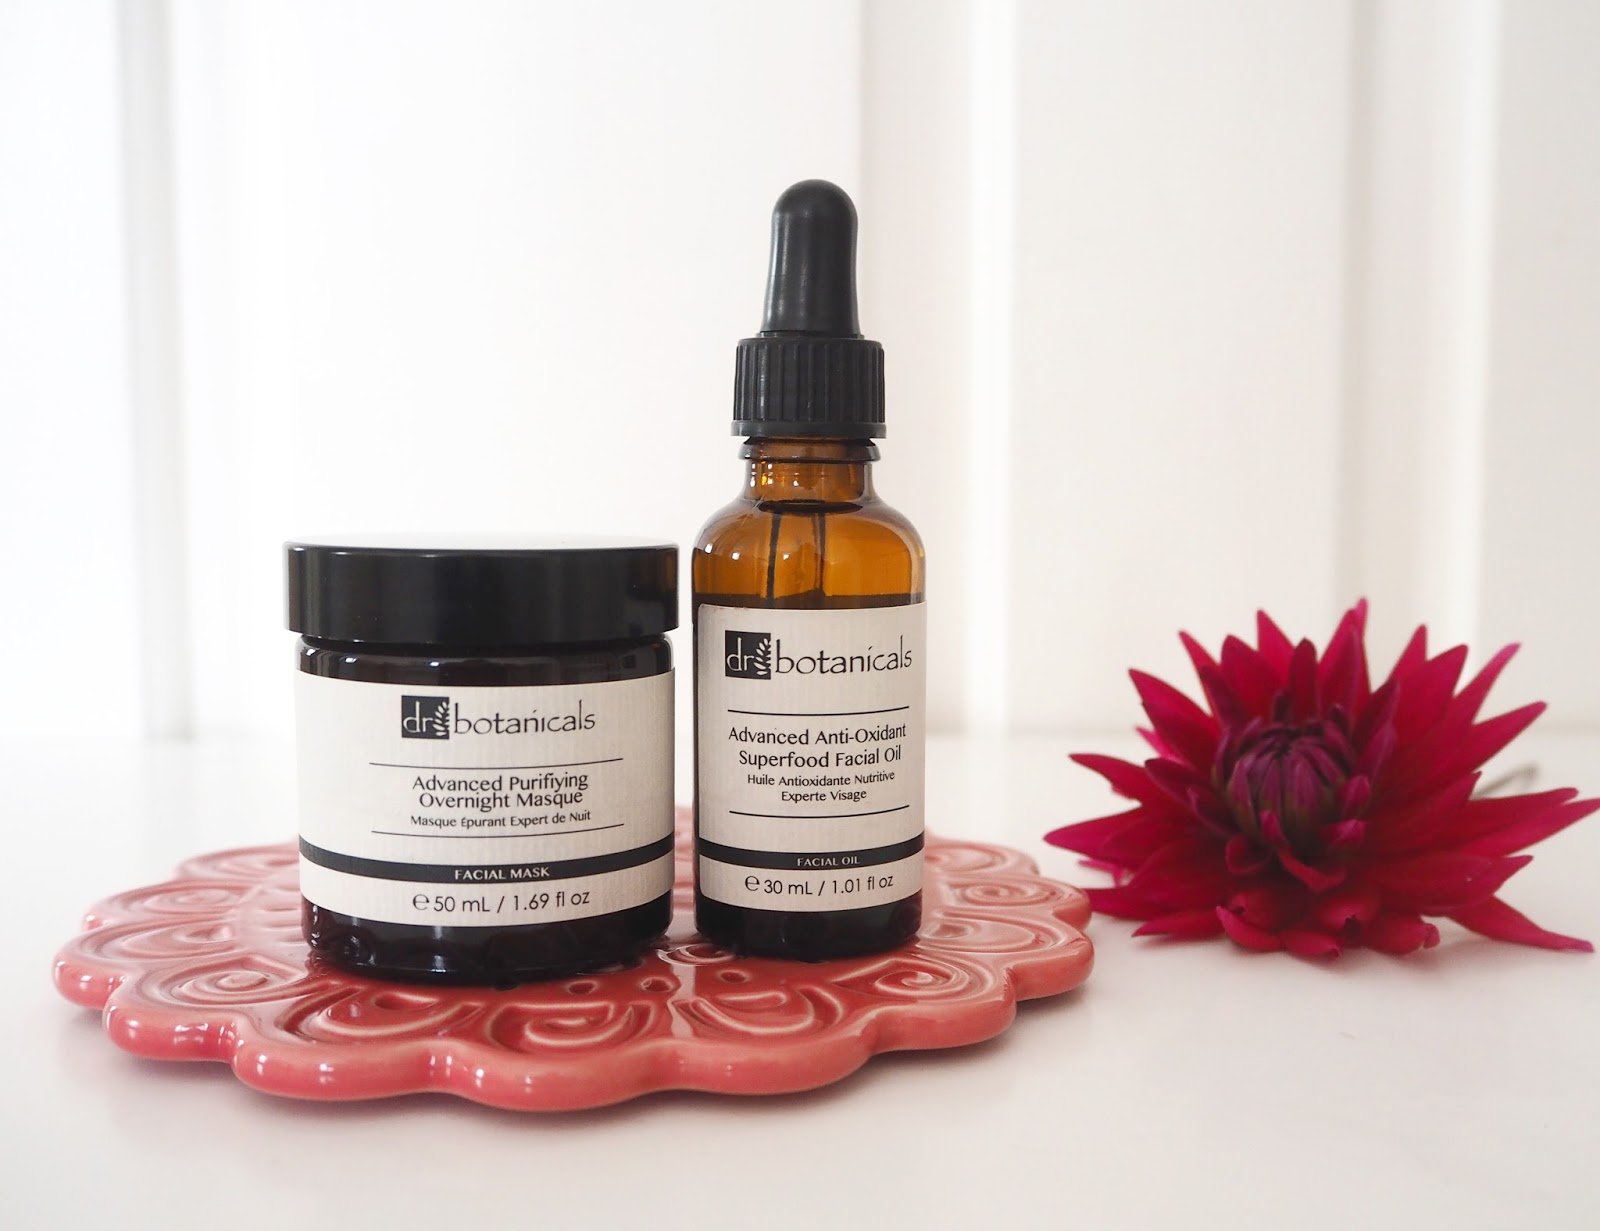 Dr Botanicals Skincare Review, Katie Kirk Loves, Beauty Blogger, Luxury Skincare